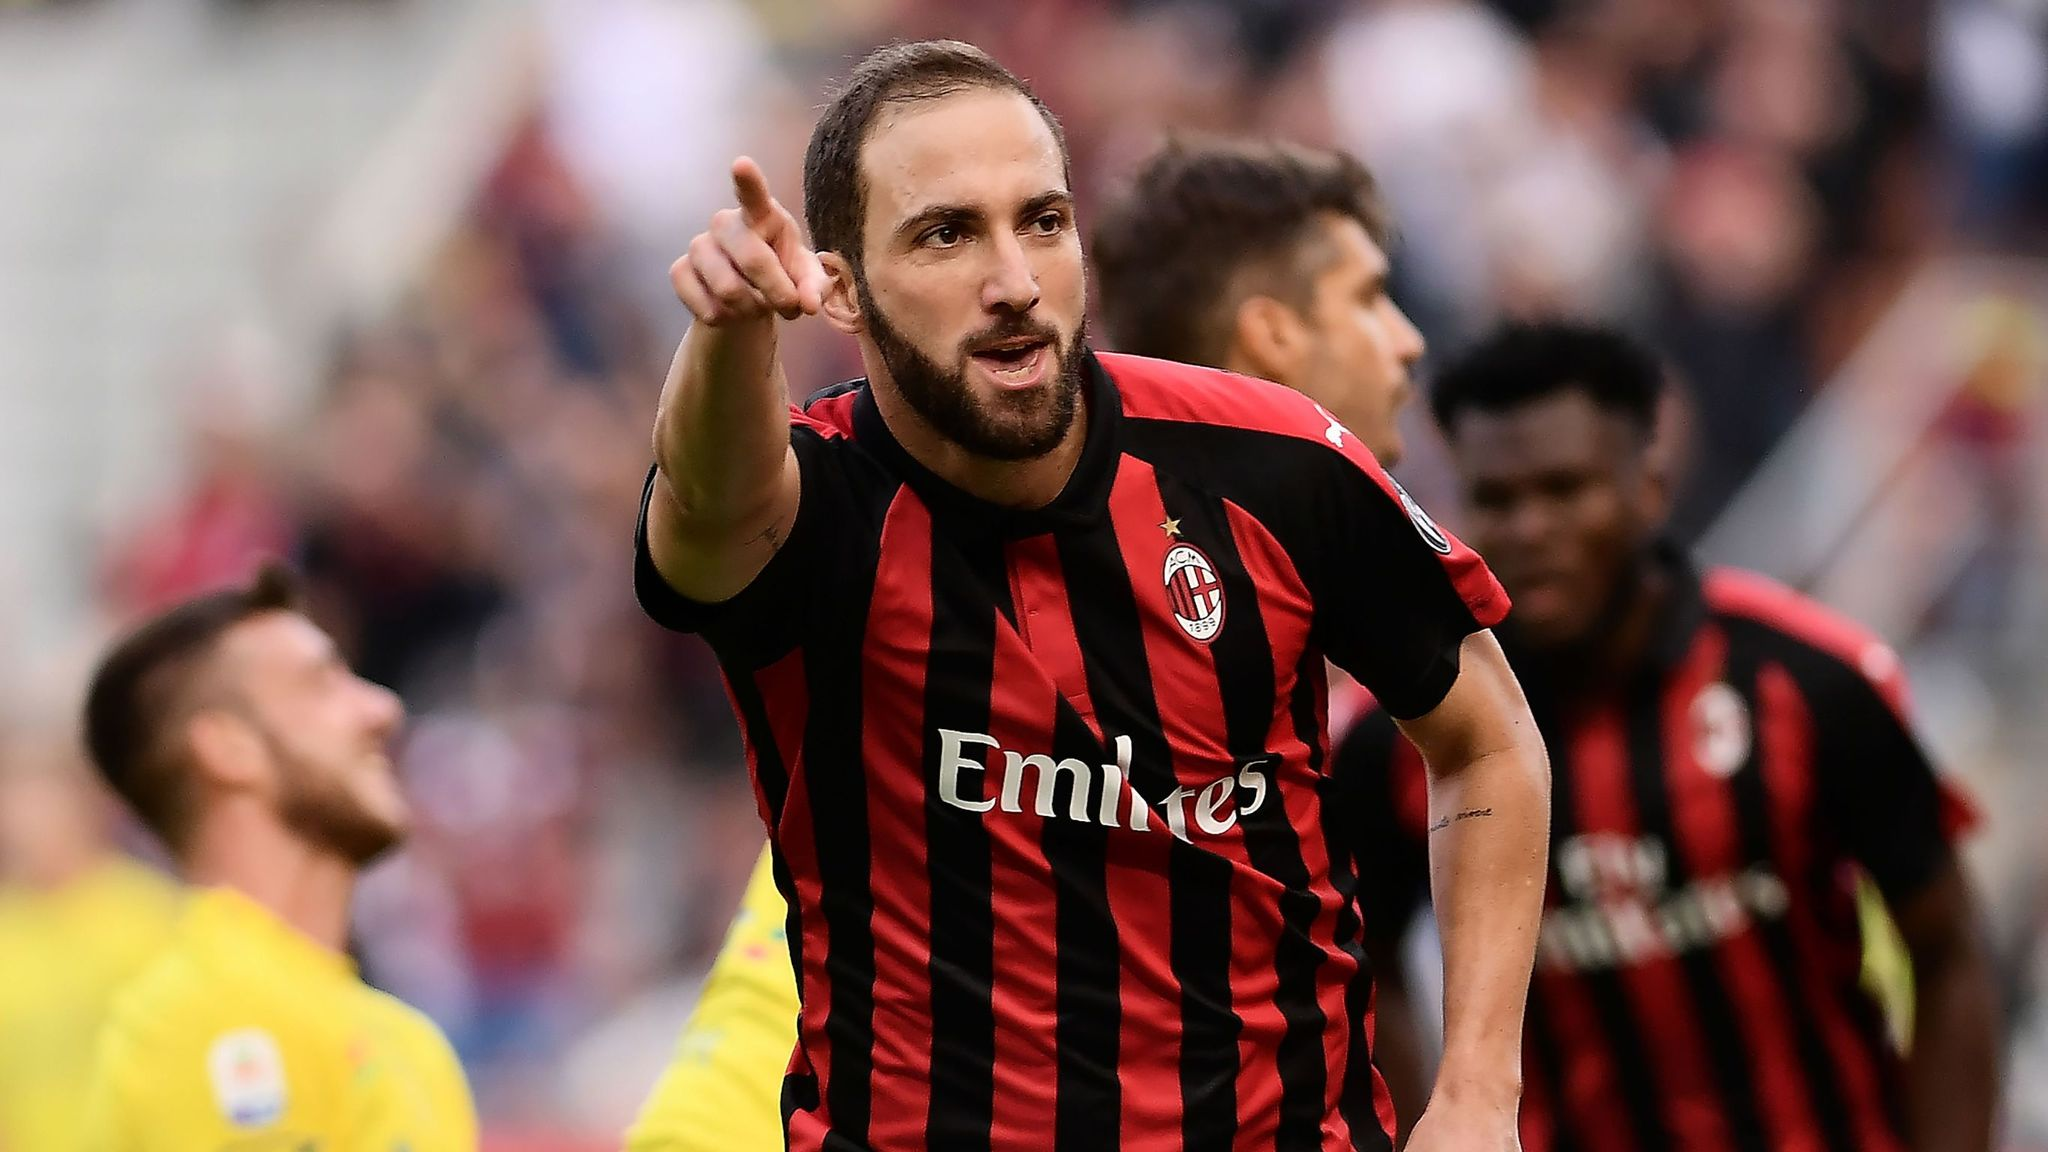 Chelsea target Gonzalo Higuain wants to leave Milan, says Gennaro ...